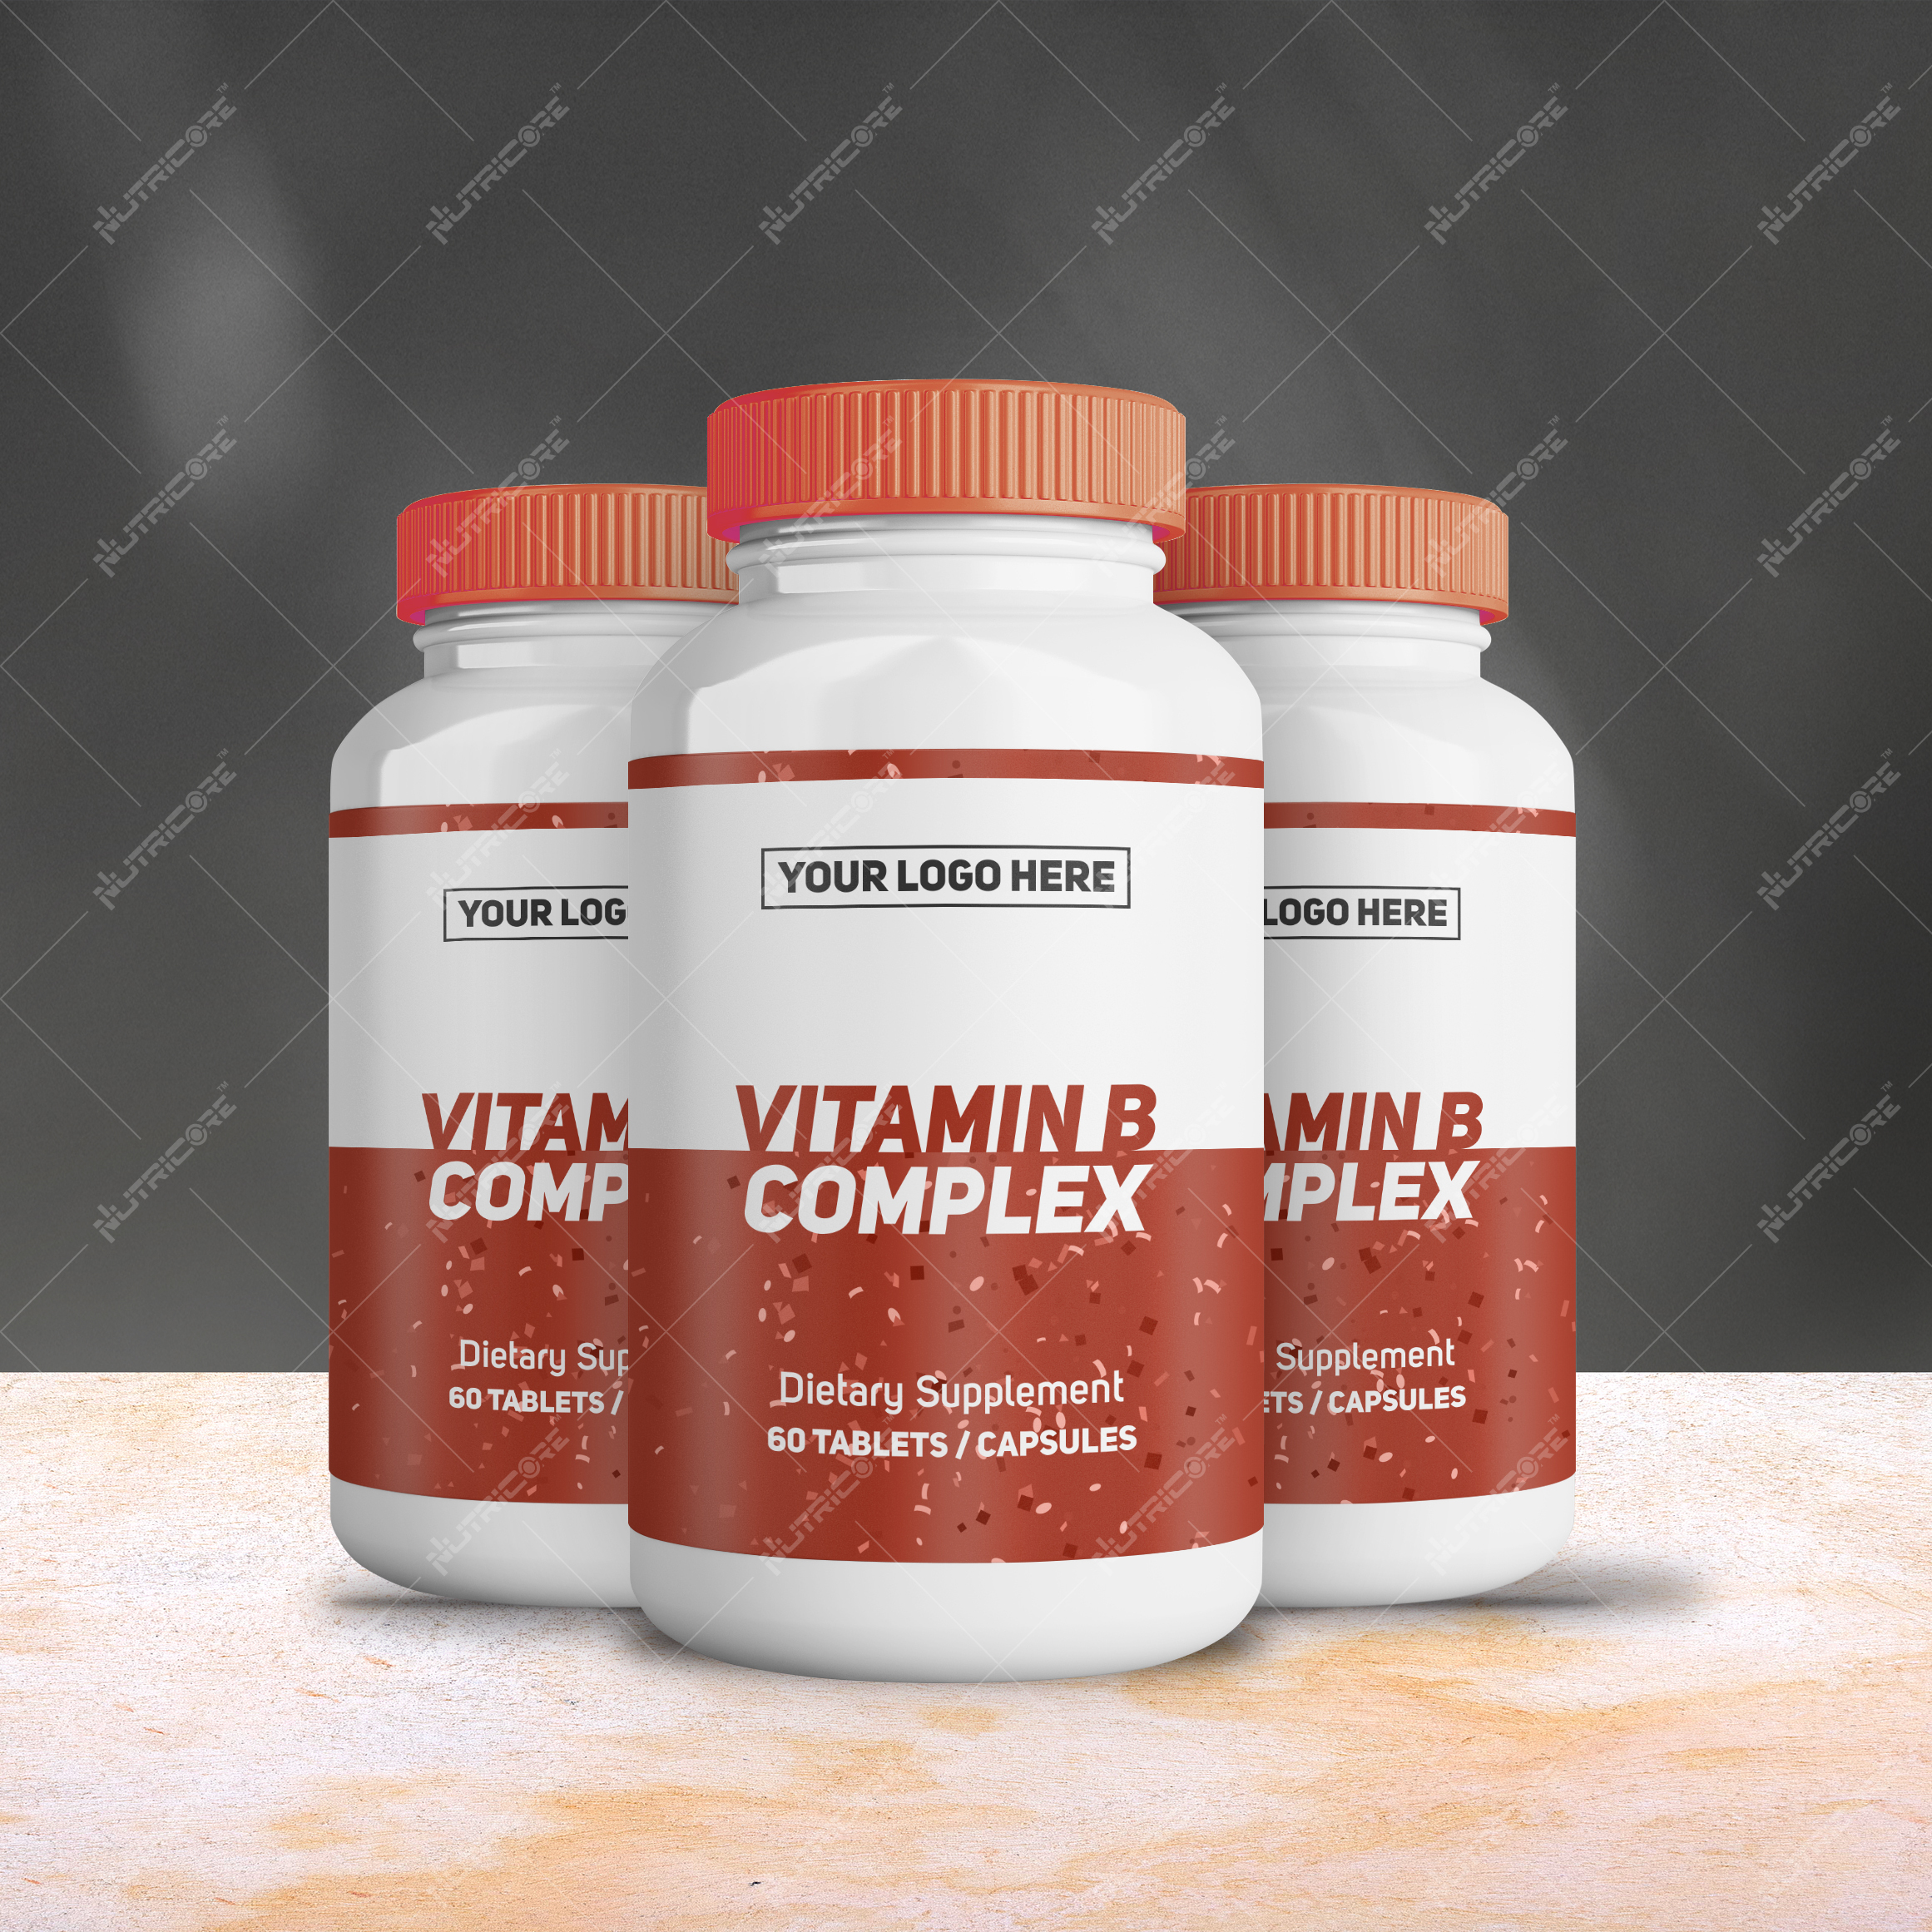 VITAMIN B COMPLEX Tablets/ Capsules (Third Party Manufacturing)